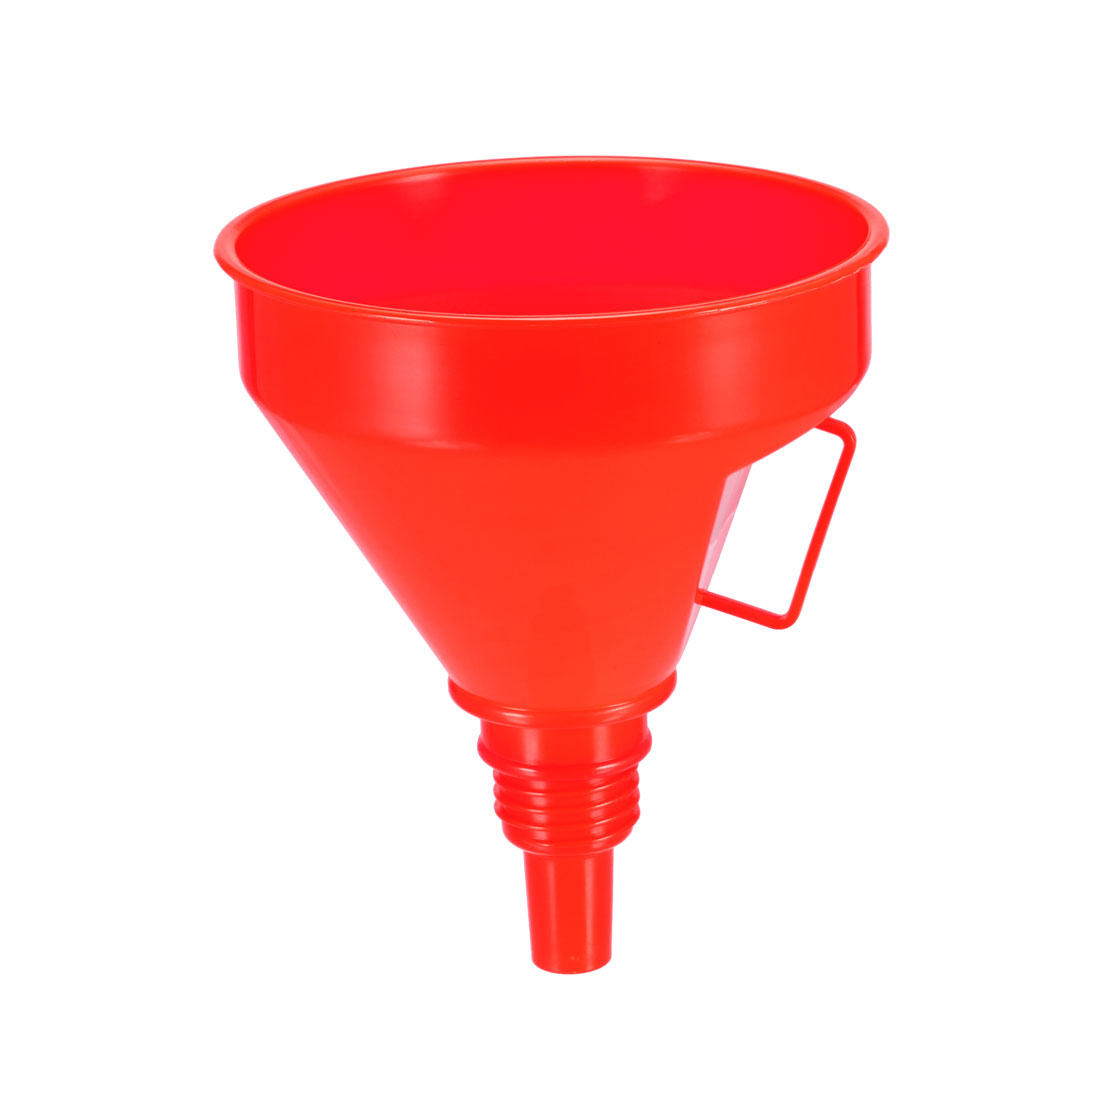 Filter Funnel 6 inch Plastic Red Feul Funnel for Petrol Engine Oil Water Fuel